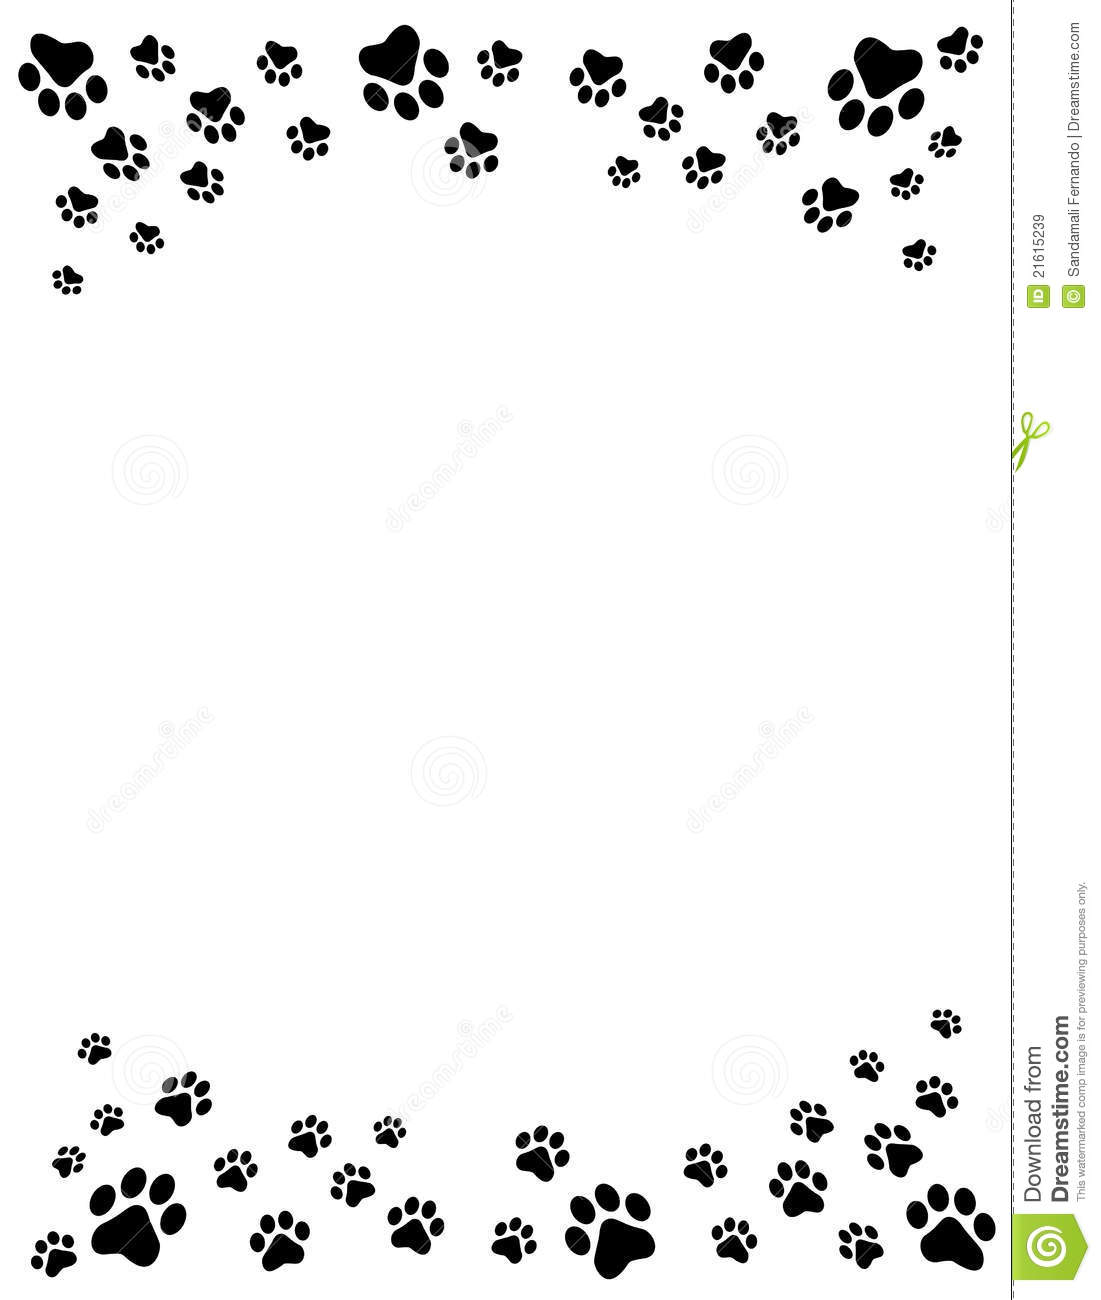 Paw Prints Border Royalty Free Stock Images - Image: 21615239